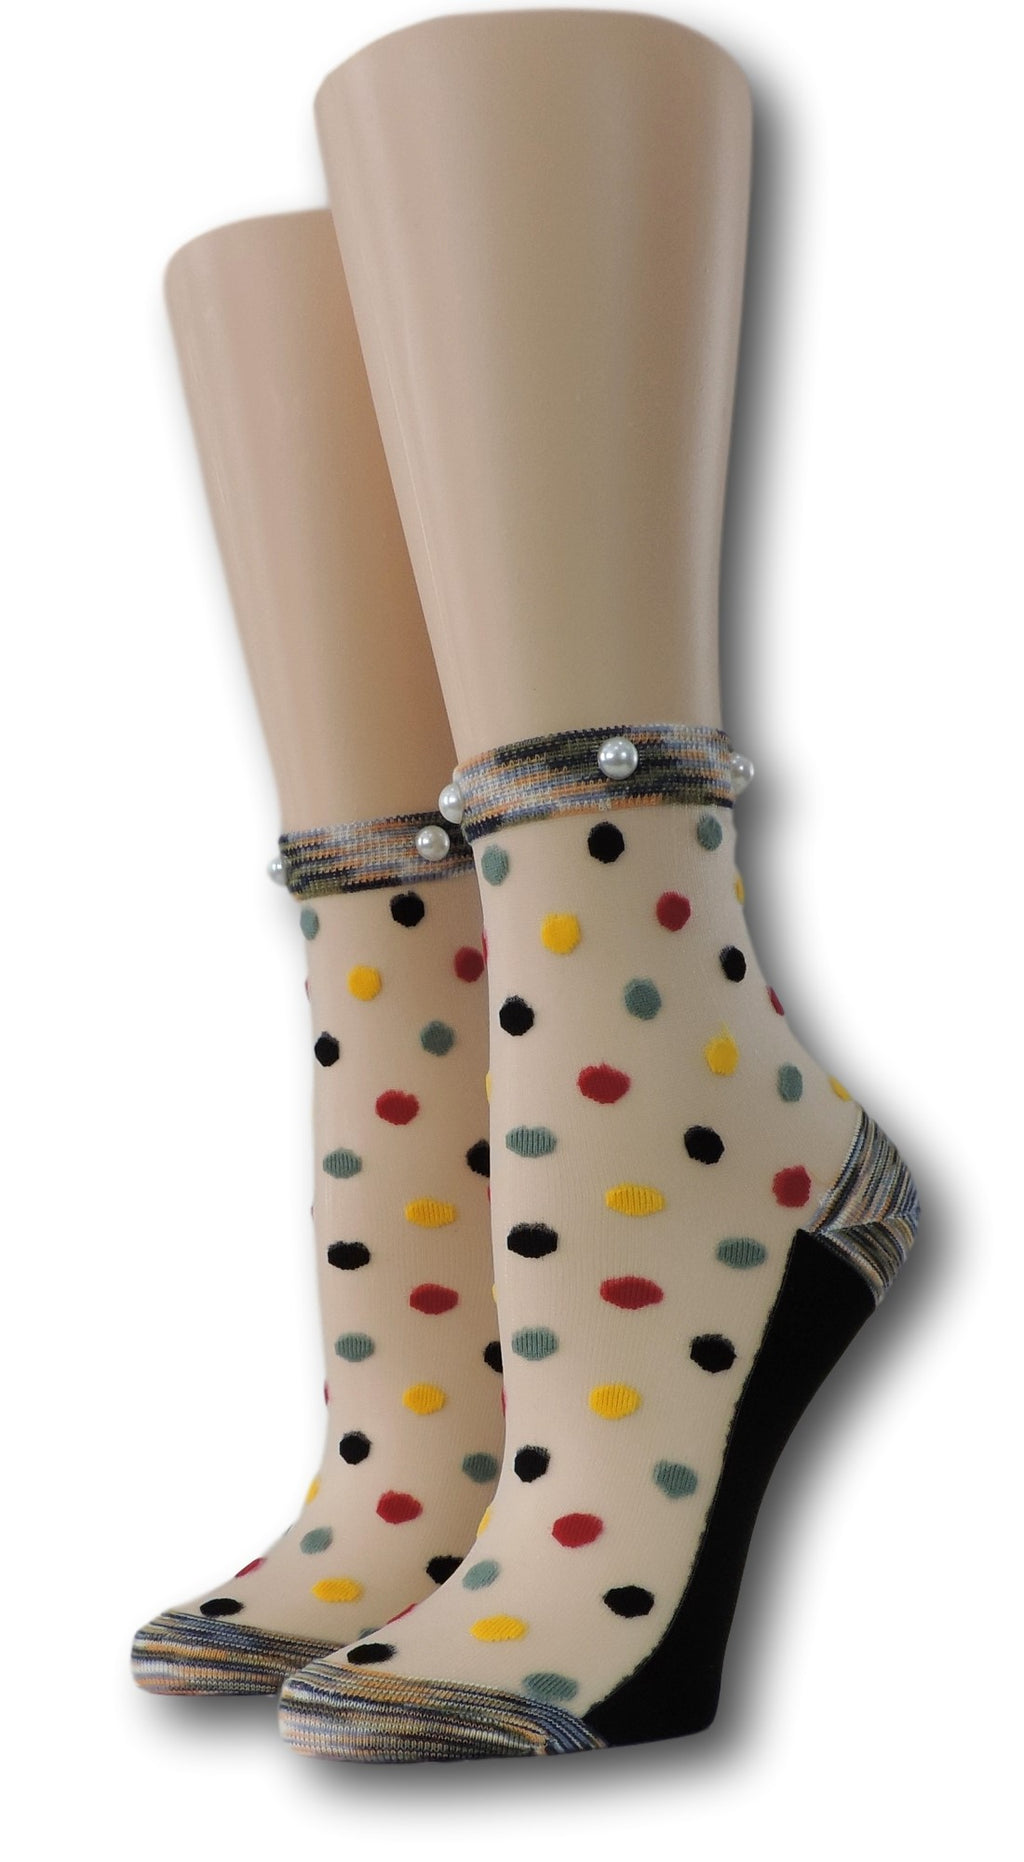 Multi Dotted Sheer Socks with beads